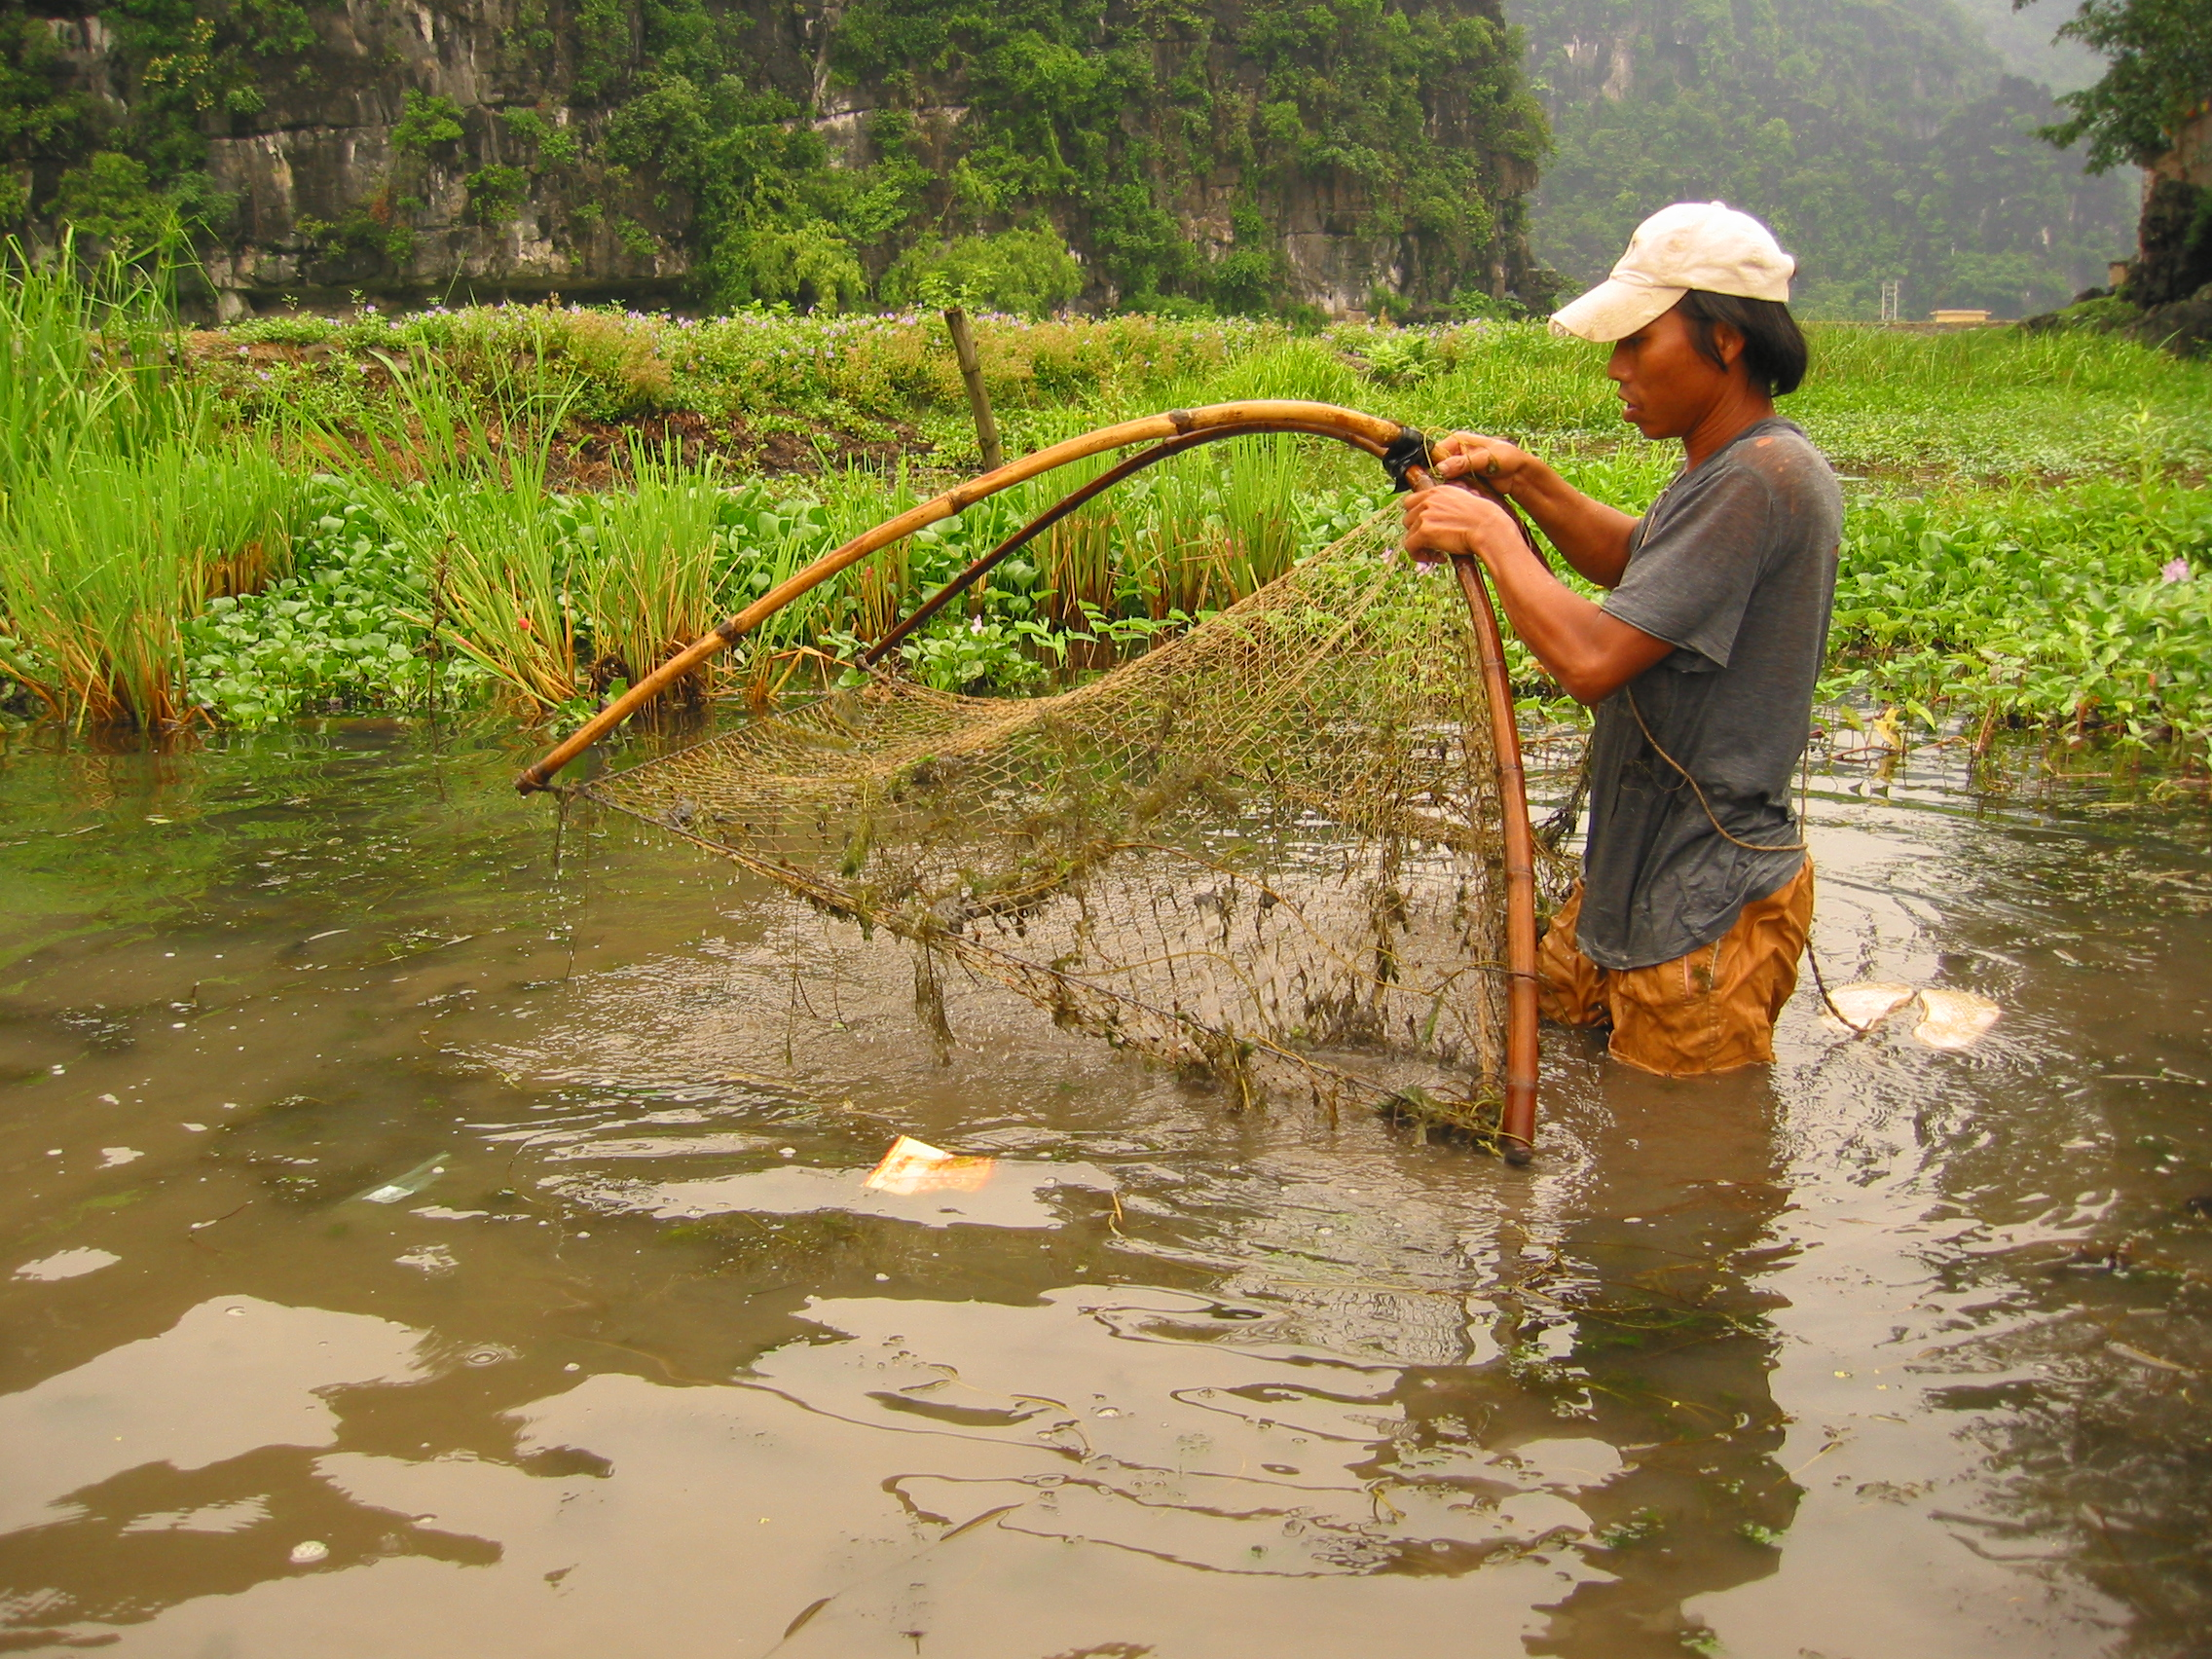 A man lowers his fishing net into the river to catch fish for his family's evening meal in Vietnam. Photo by Bruce Bailey for AusAID